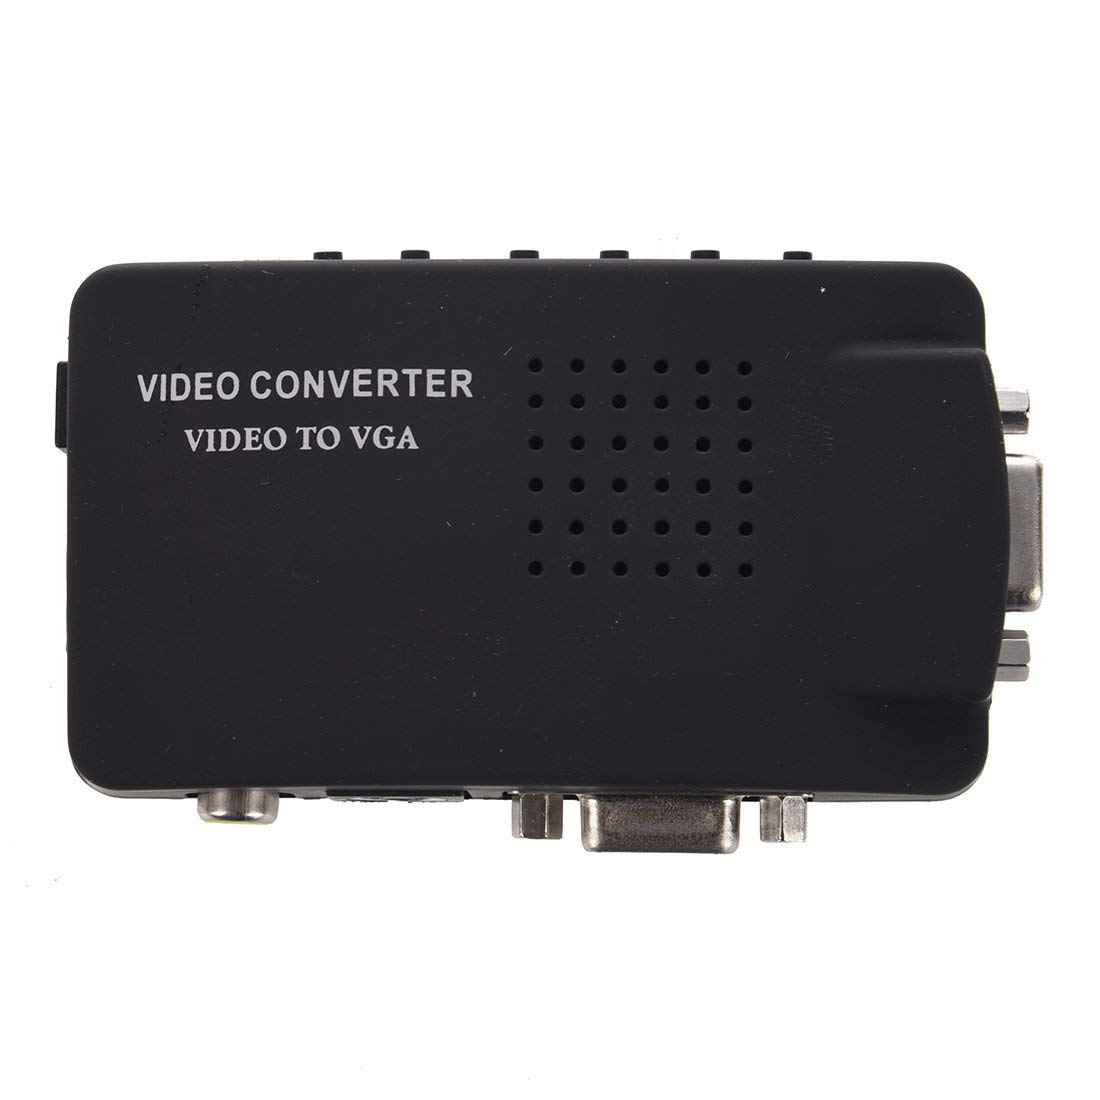 SODIAL(R) HD VGA to AV Converter RCA S-video Signal Adapter Switch Box PC to TV 25601600